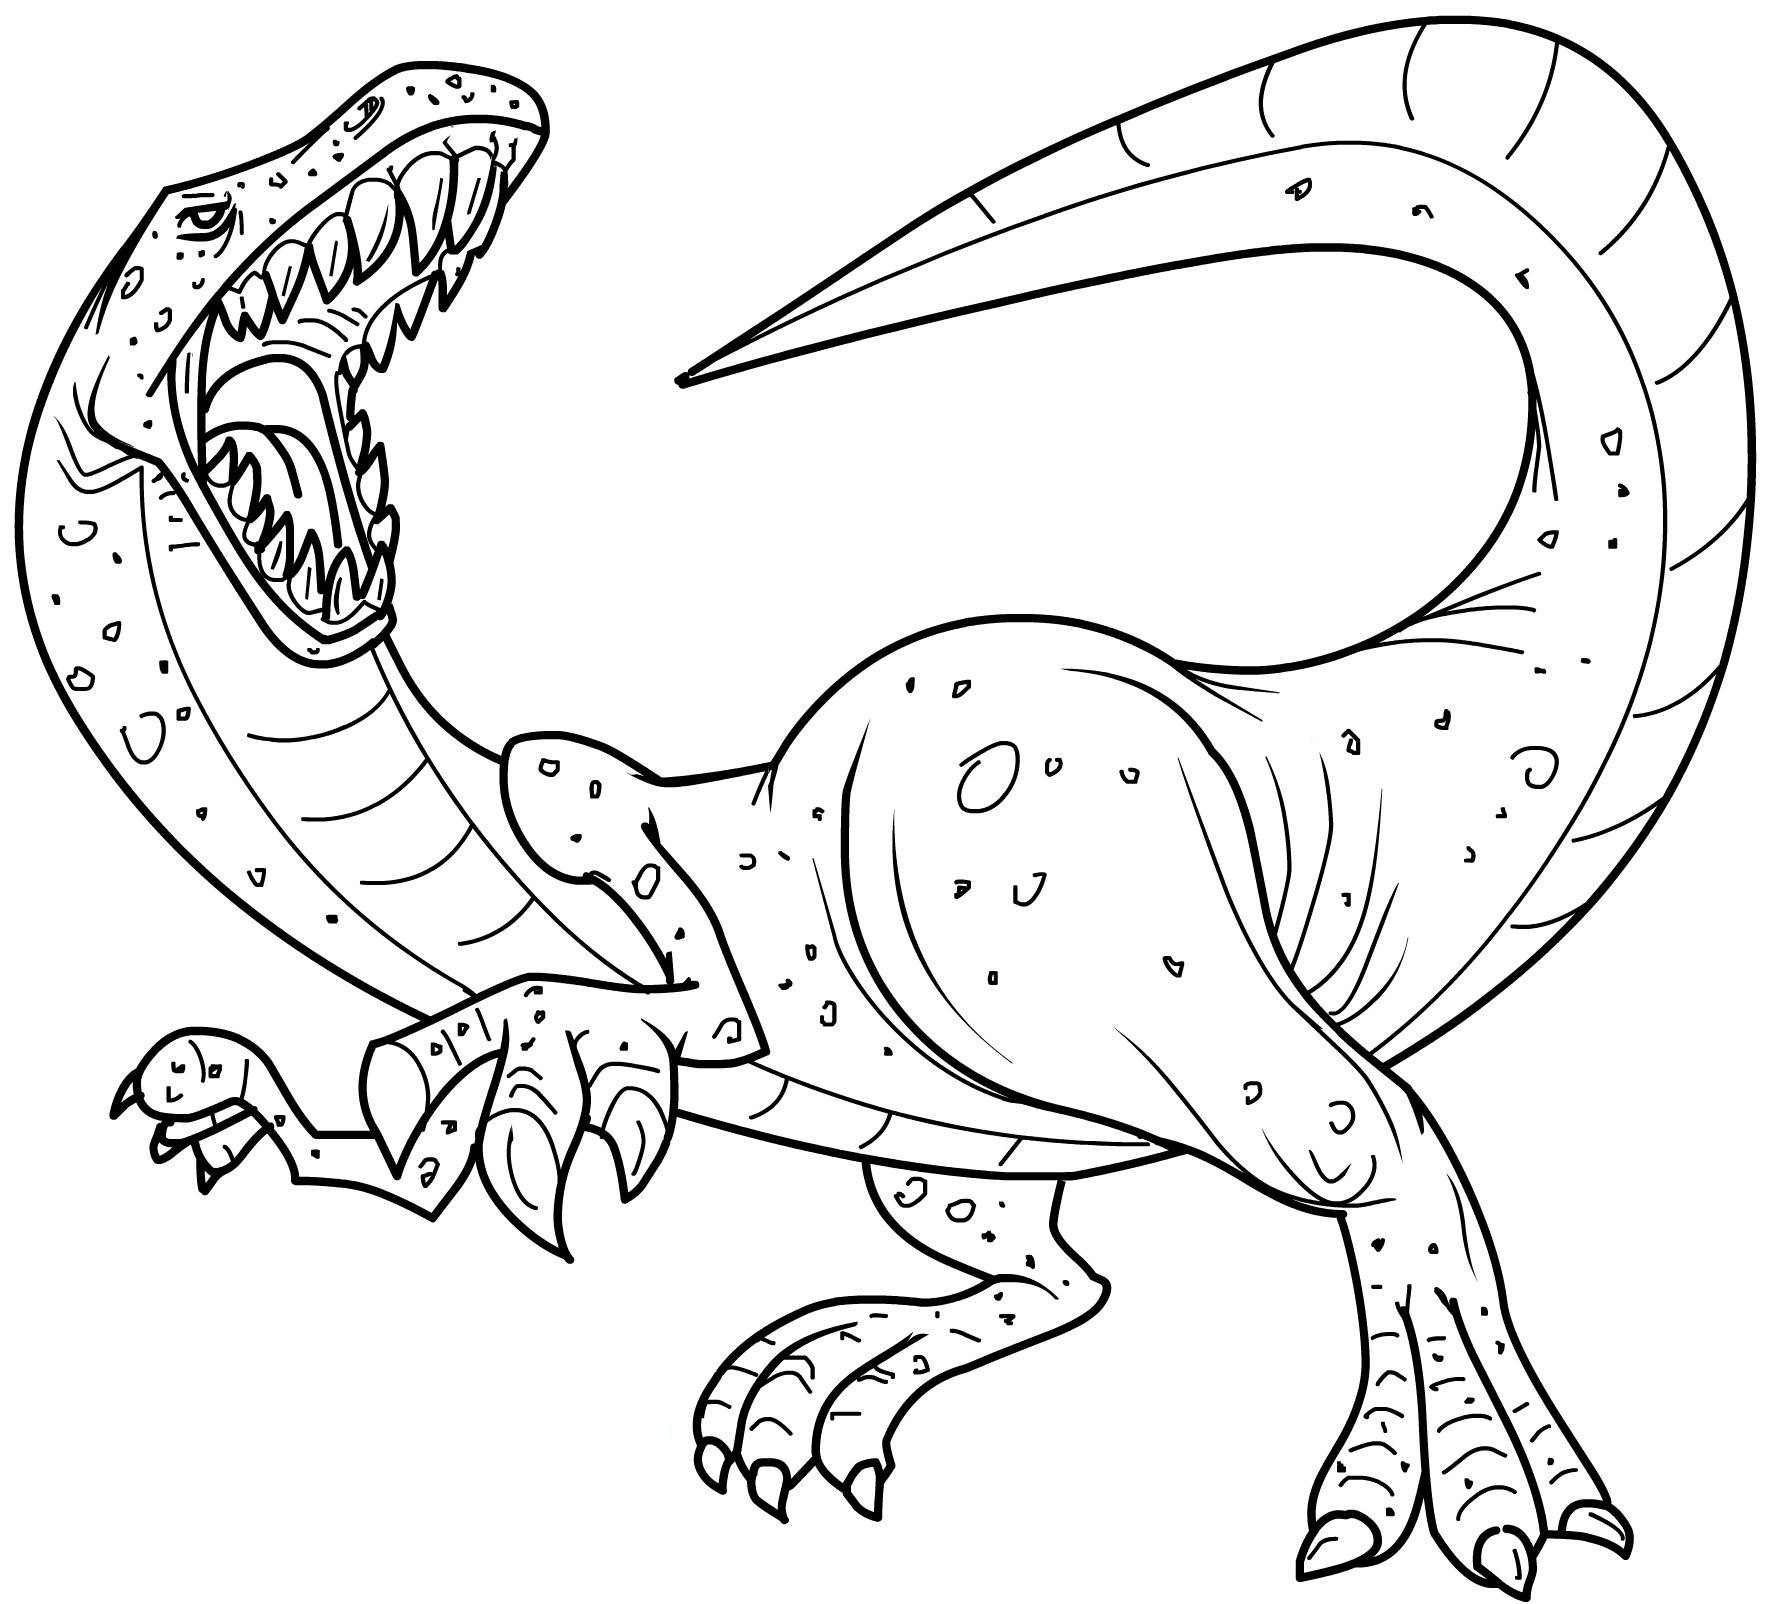 pictures of dinosaurs to print coloring pages dinosaur free printable coloring pages to dinosaurs of print pictures